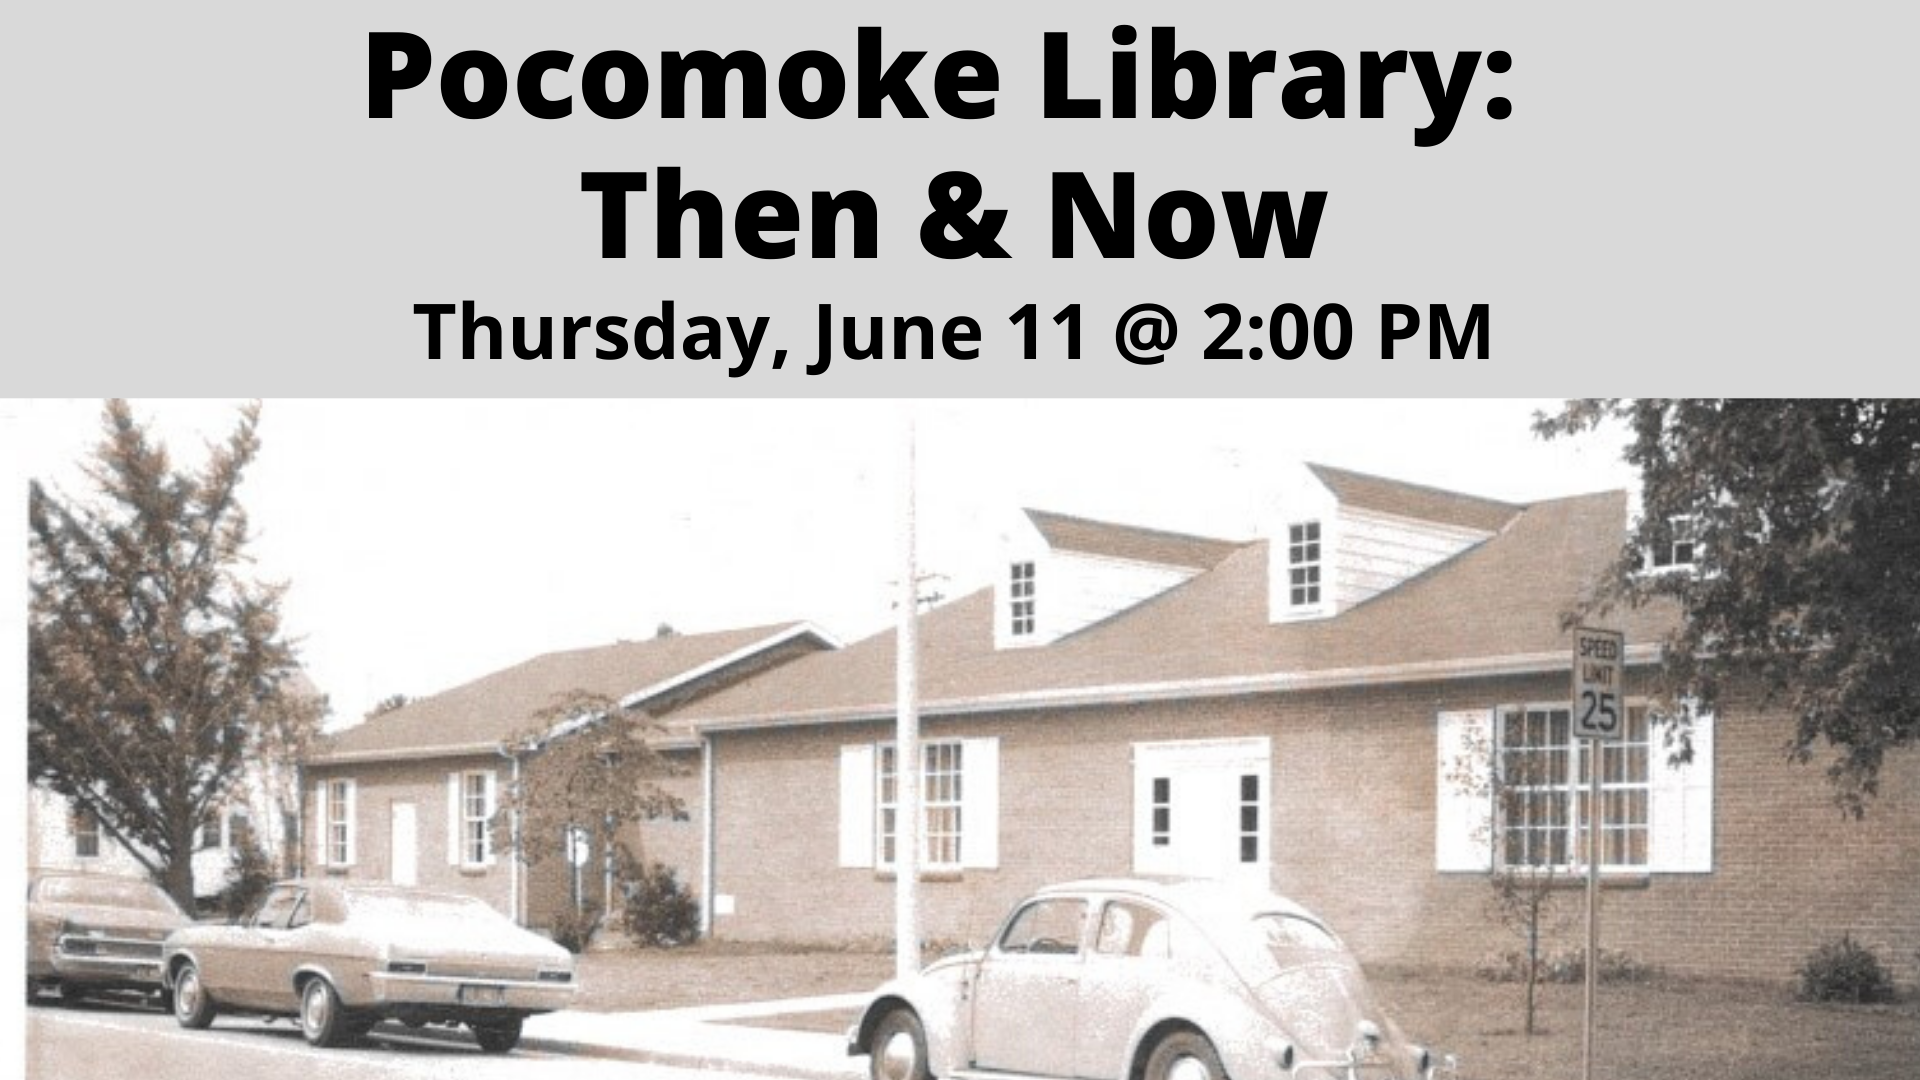 Pocomoke Library Then & Now